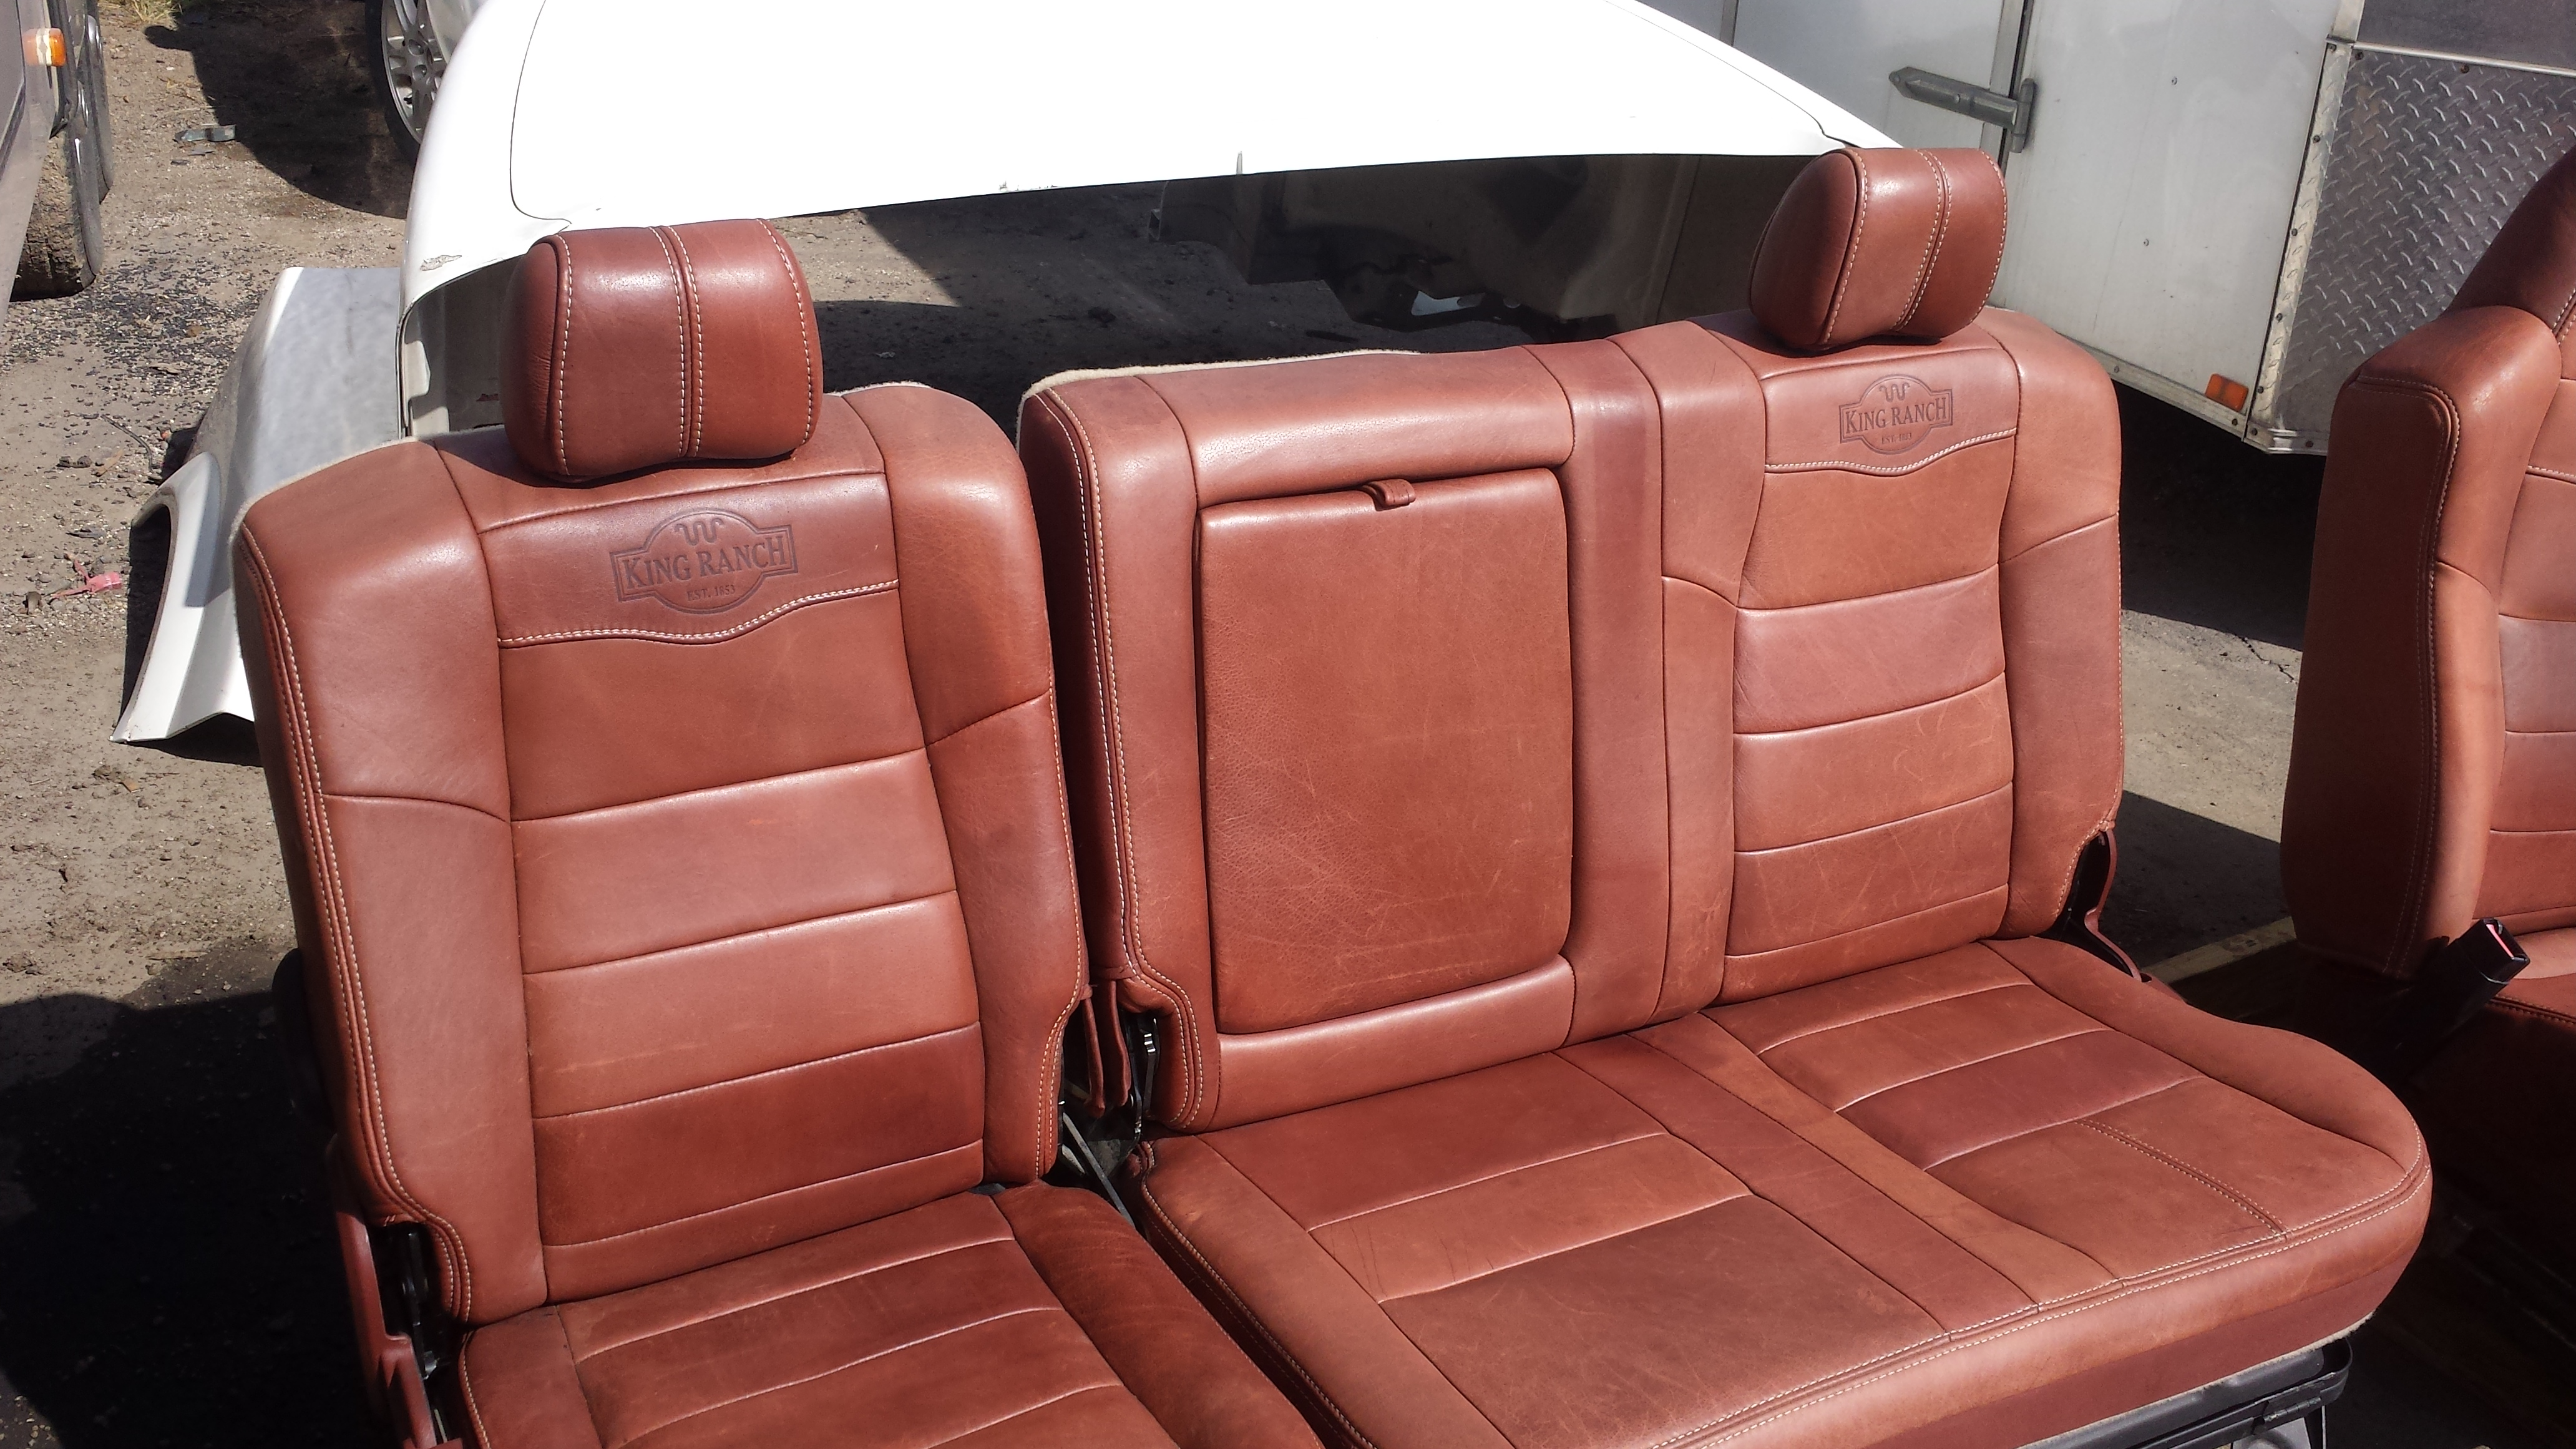 king ranch interior 2009 ford f 350 king ranch interior seats and center 930